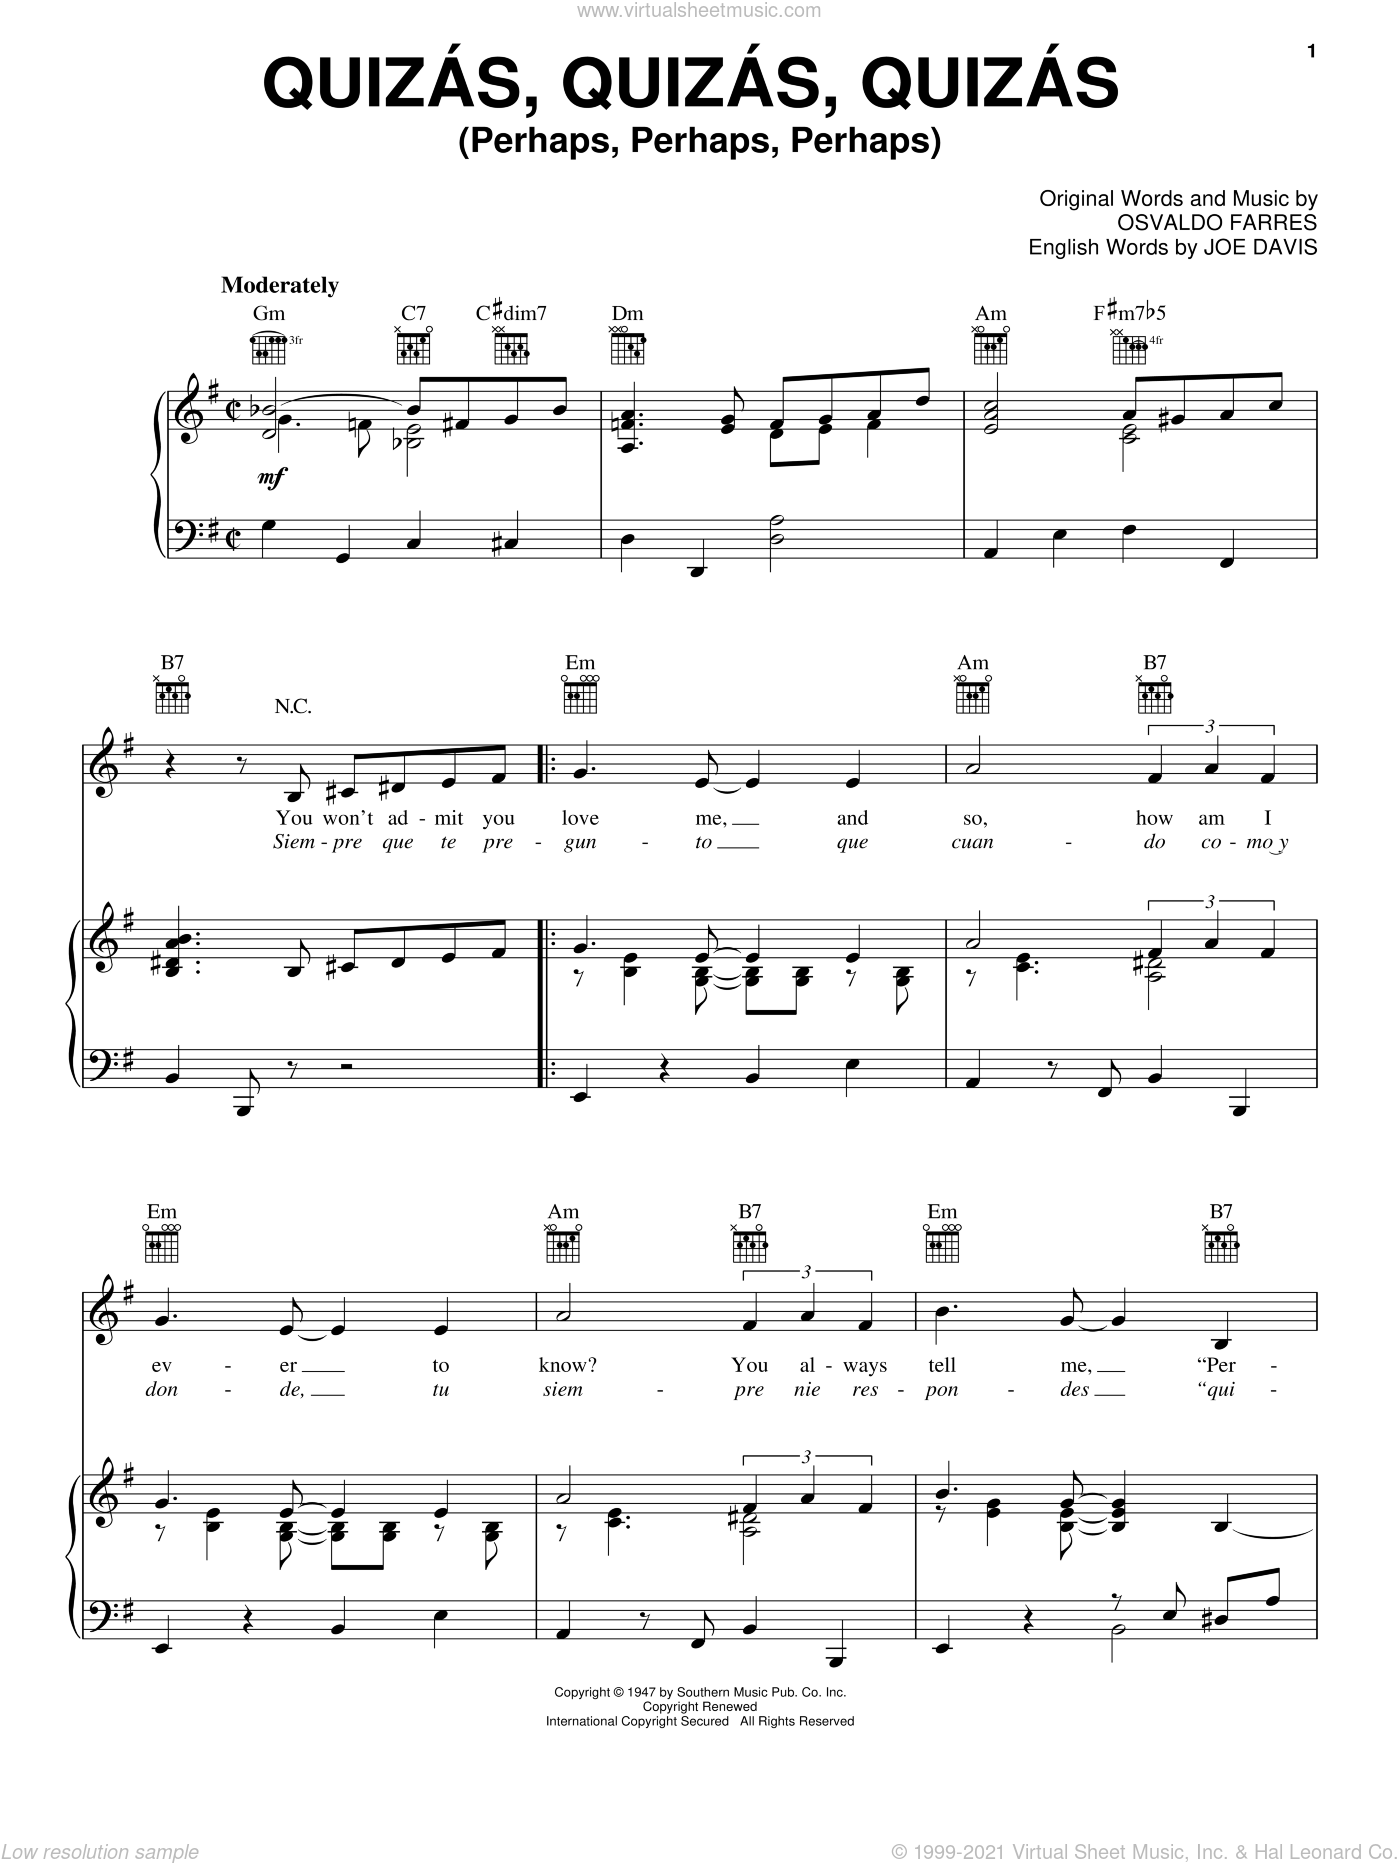 Quizas, Quizas, Quizas (Perhaps, Perhaps, Perhaps) sheet music for voice, piano or guitar by Joe Davis